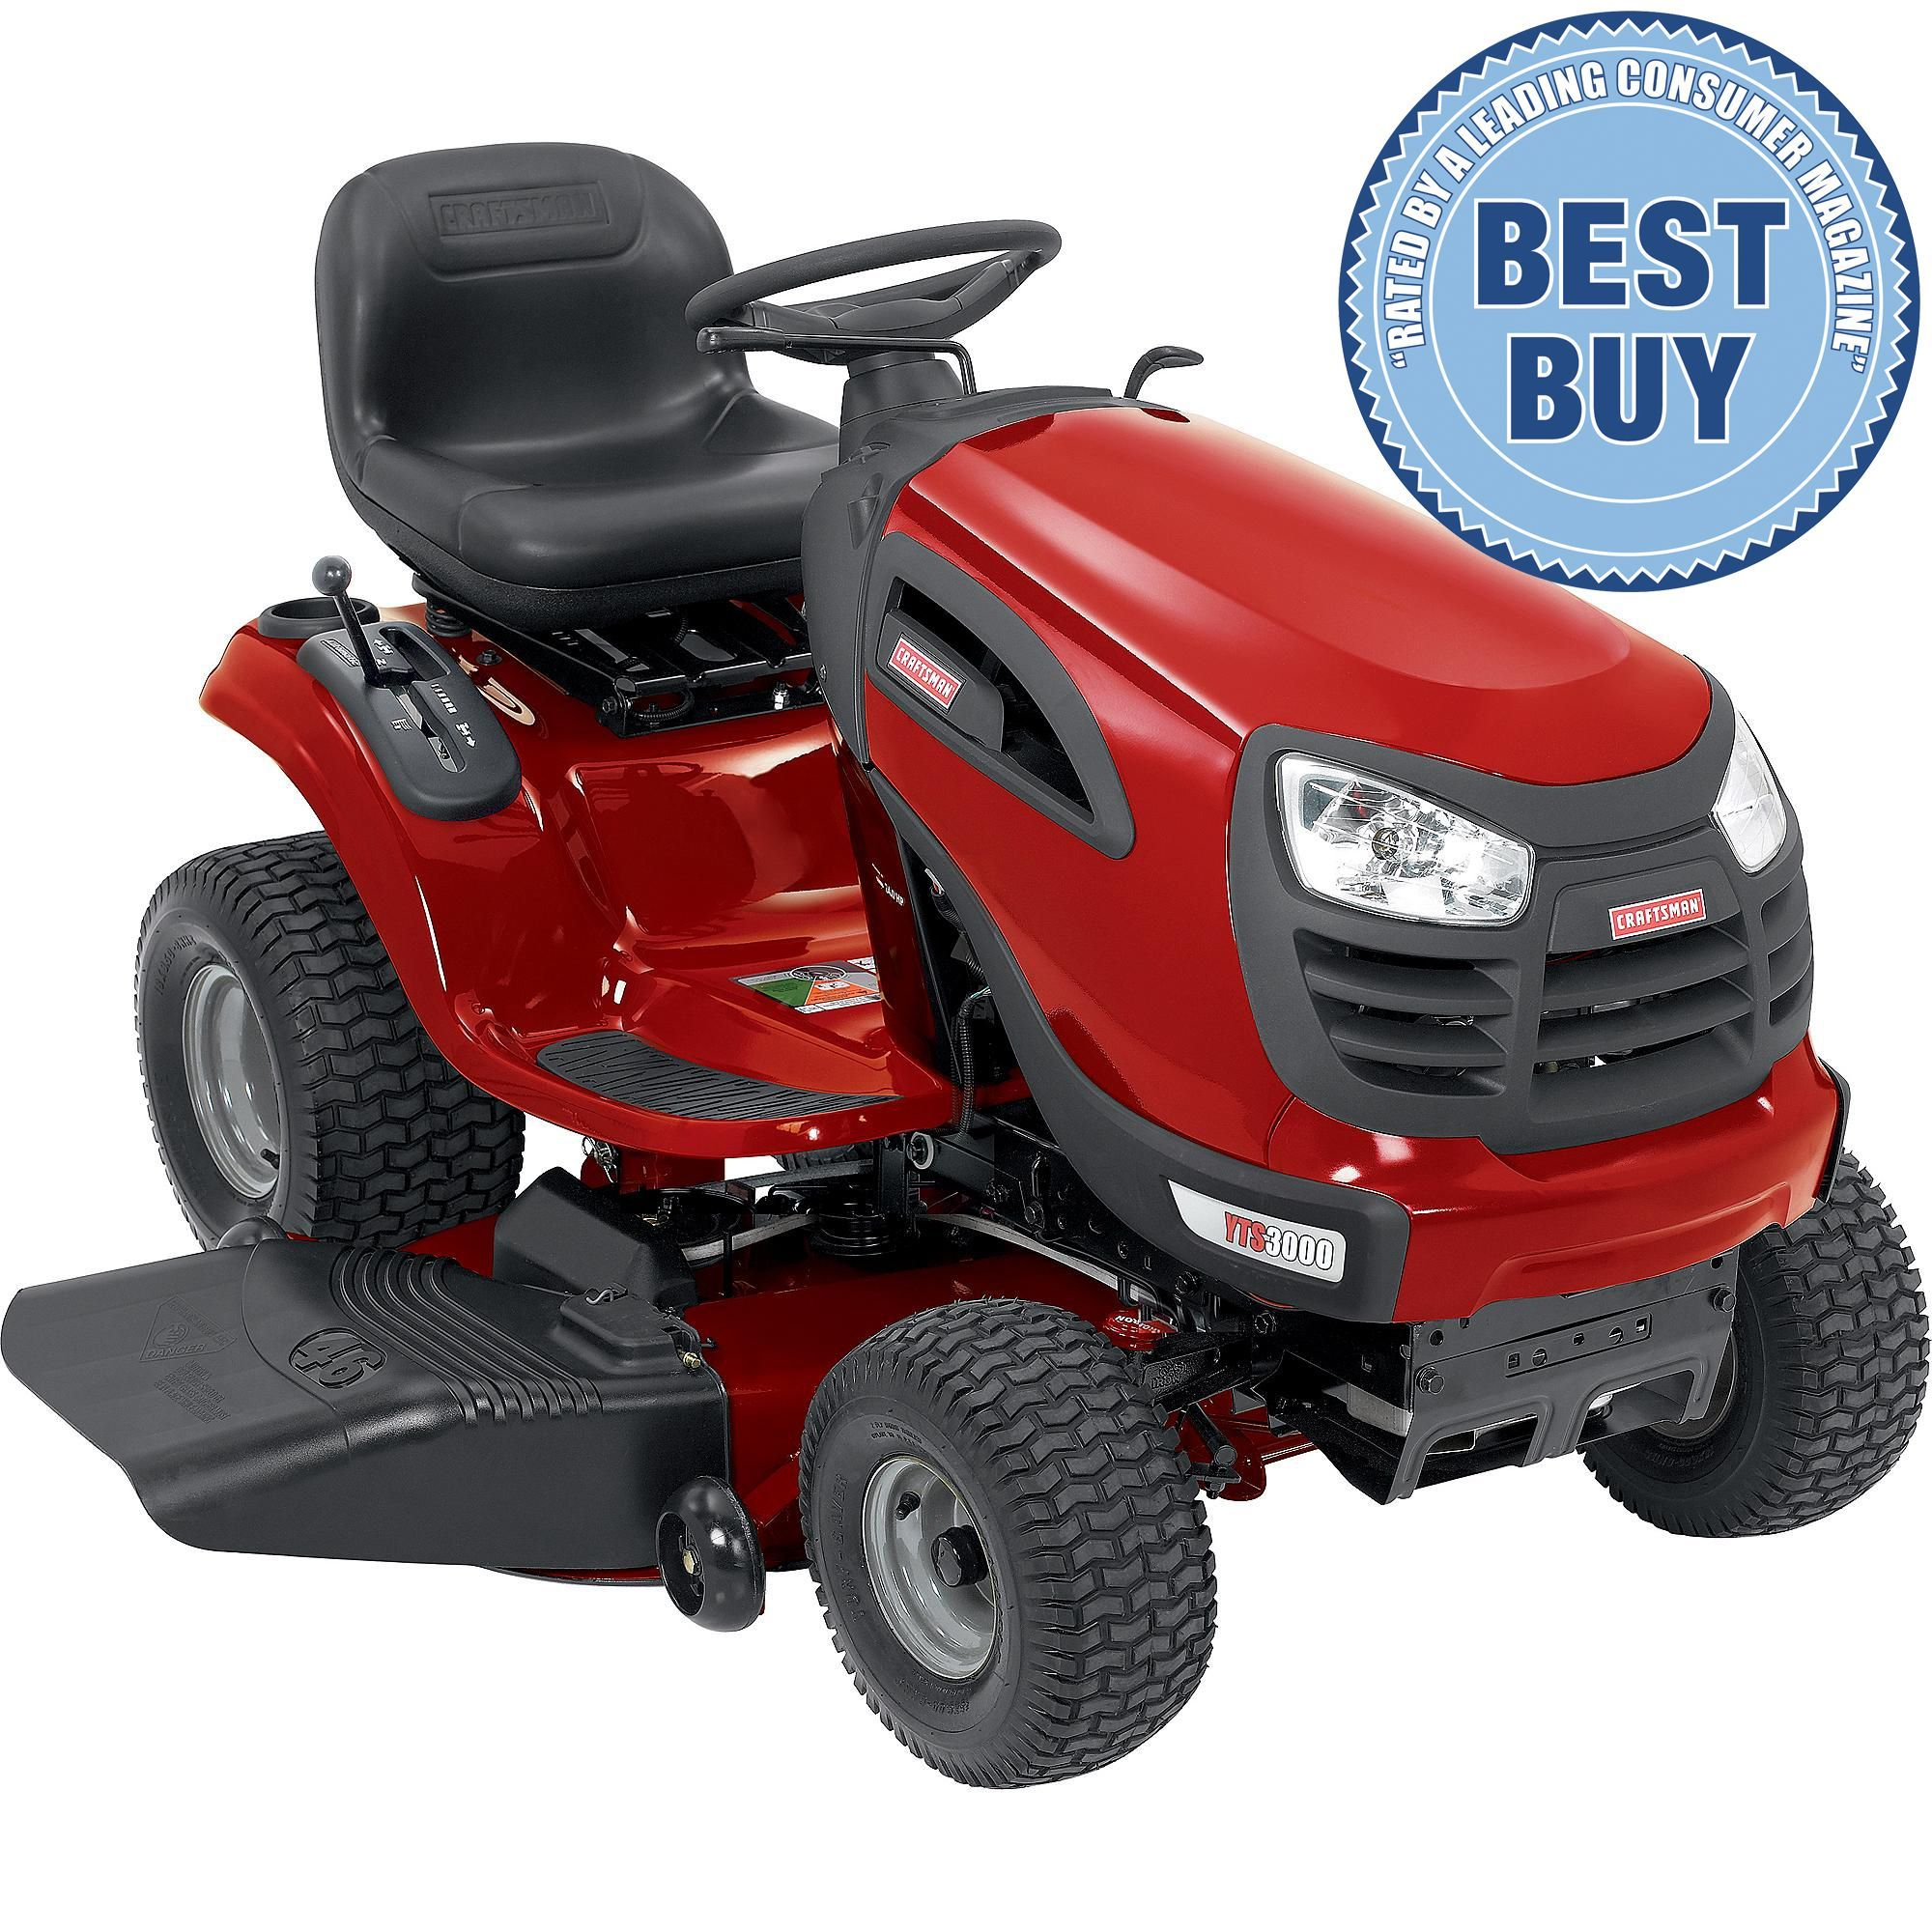 Riding Lawn Mower Spec Craftsman Yt 3000 46 Briggs And Stratton 21 Hp Gas